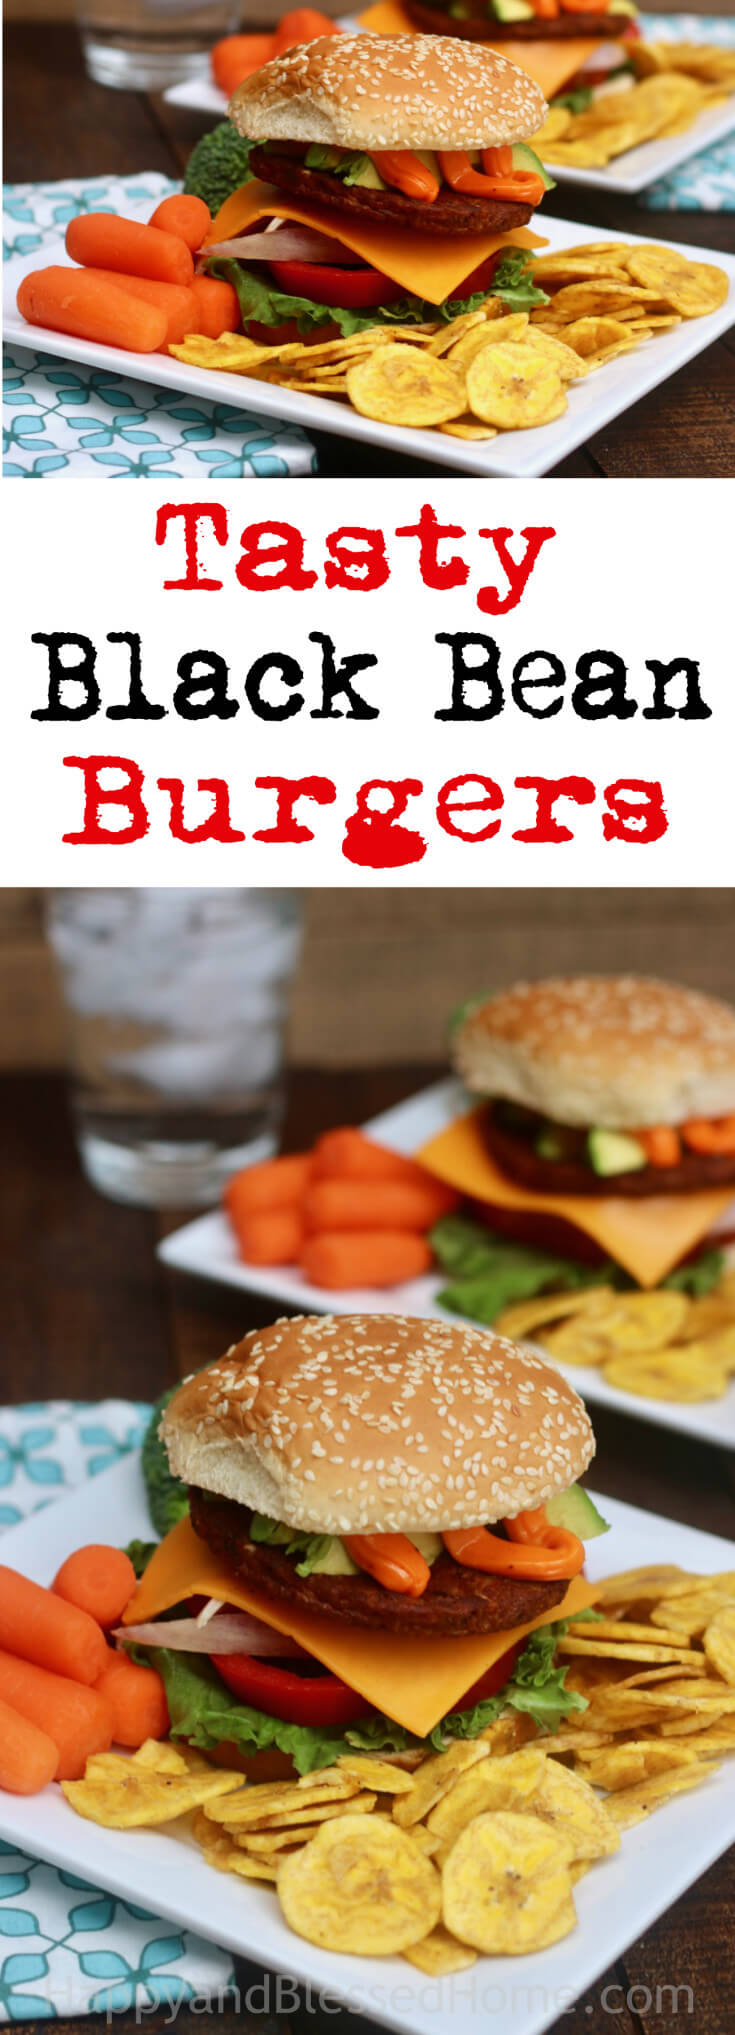 Tasty Black Bean Burgers a veggie burger perfect for a meatless family meal